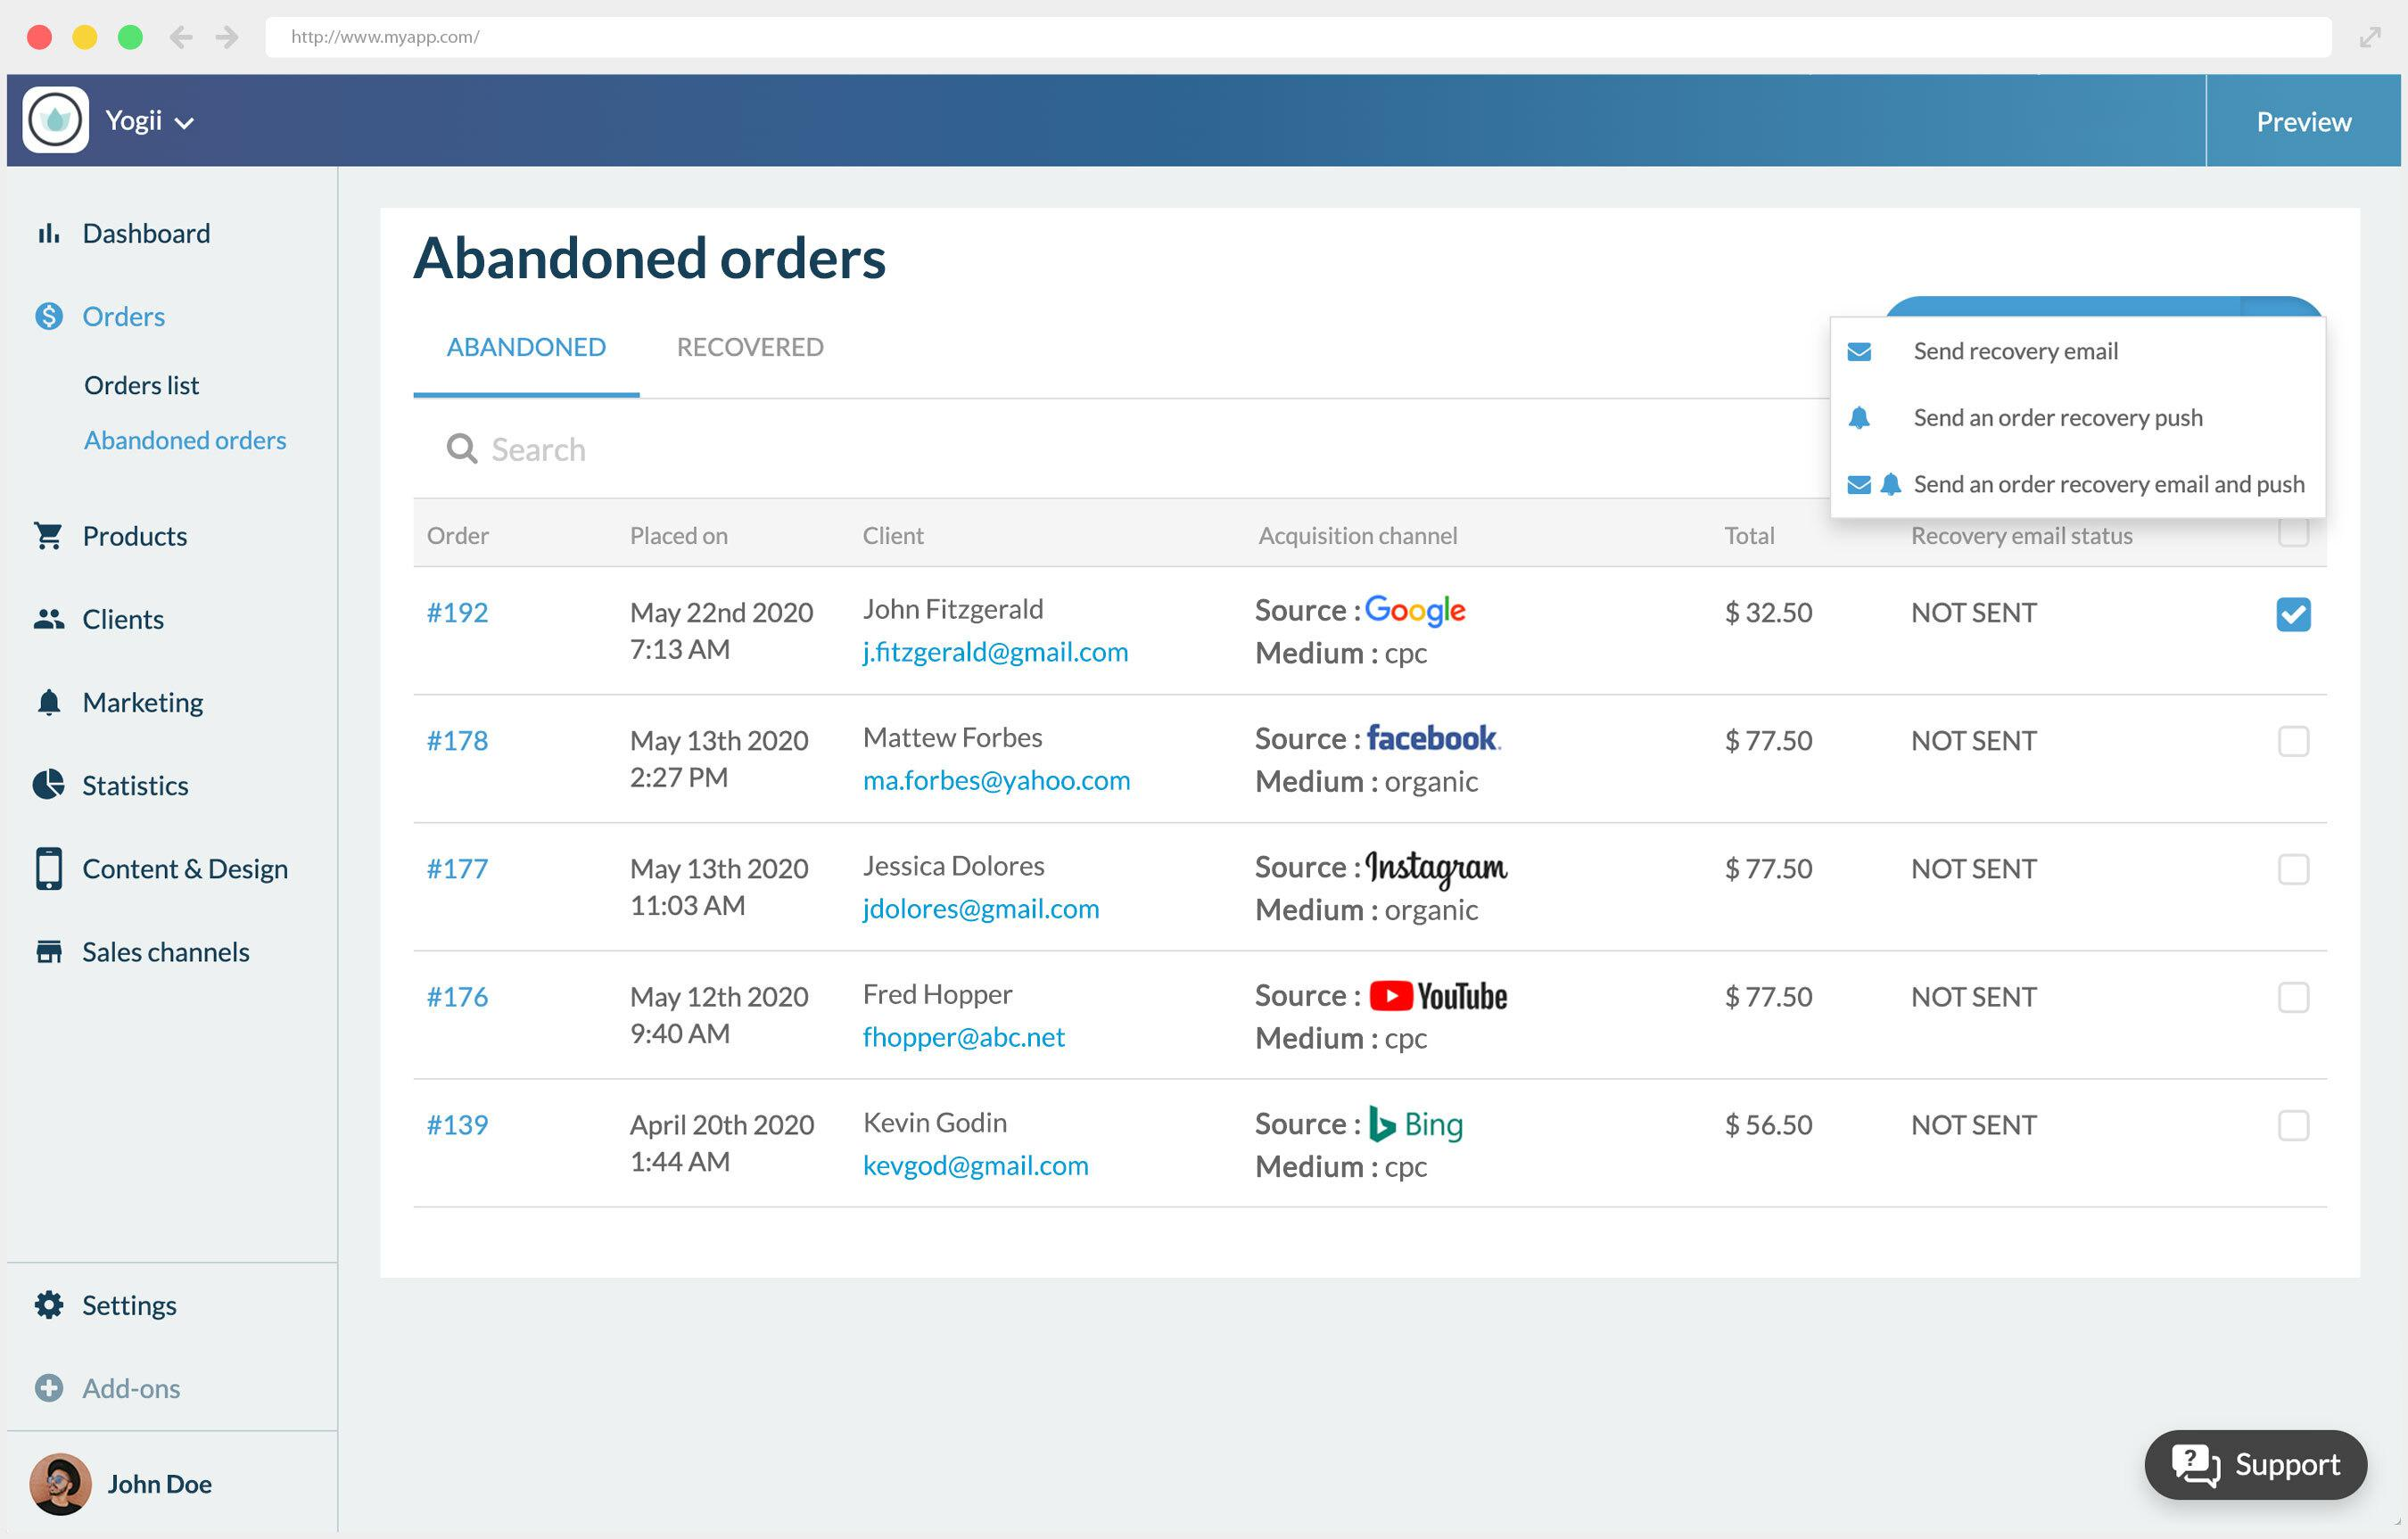 Reduce order abandonment with our new add-on